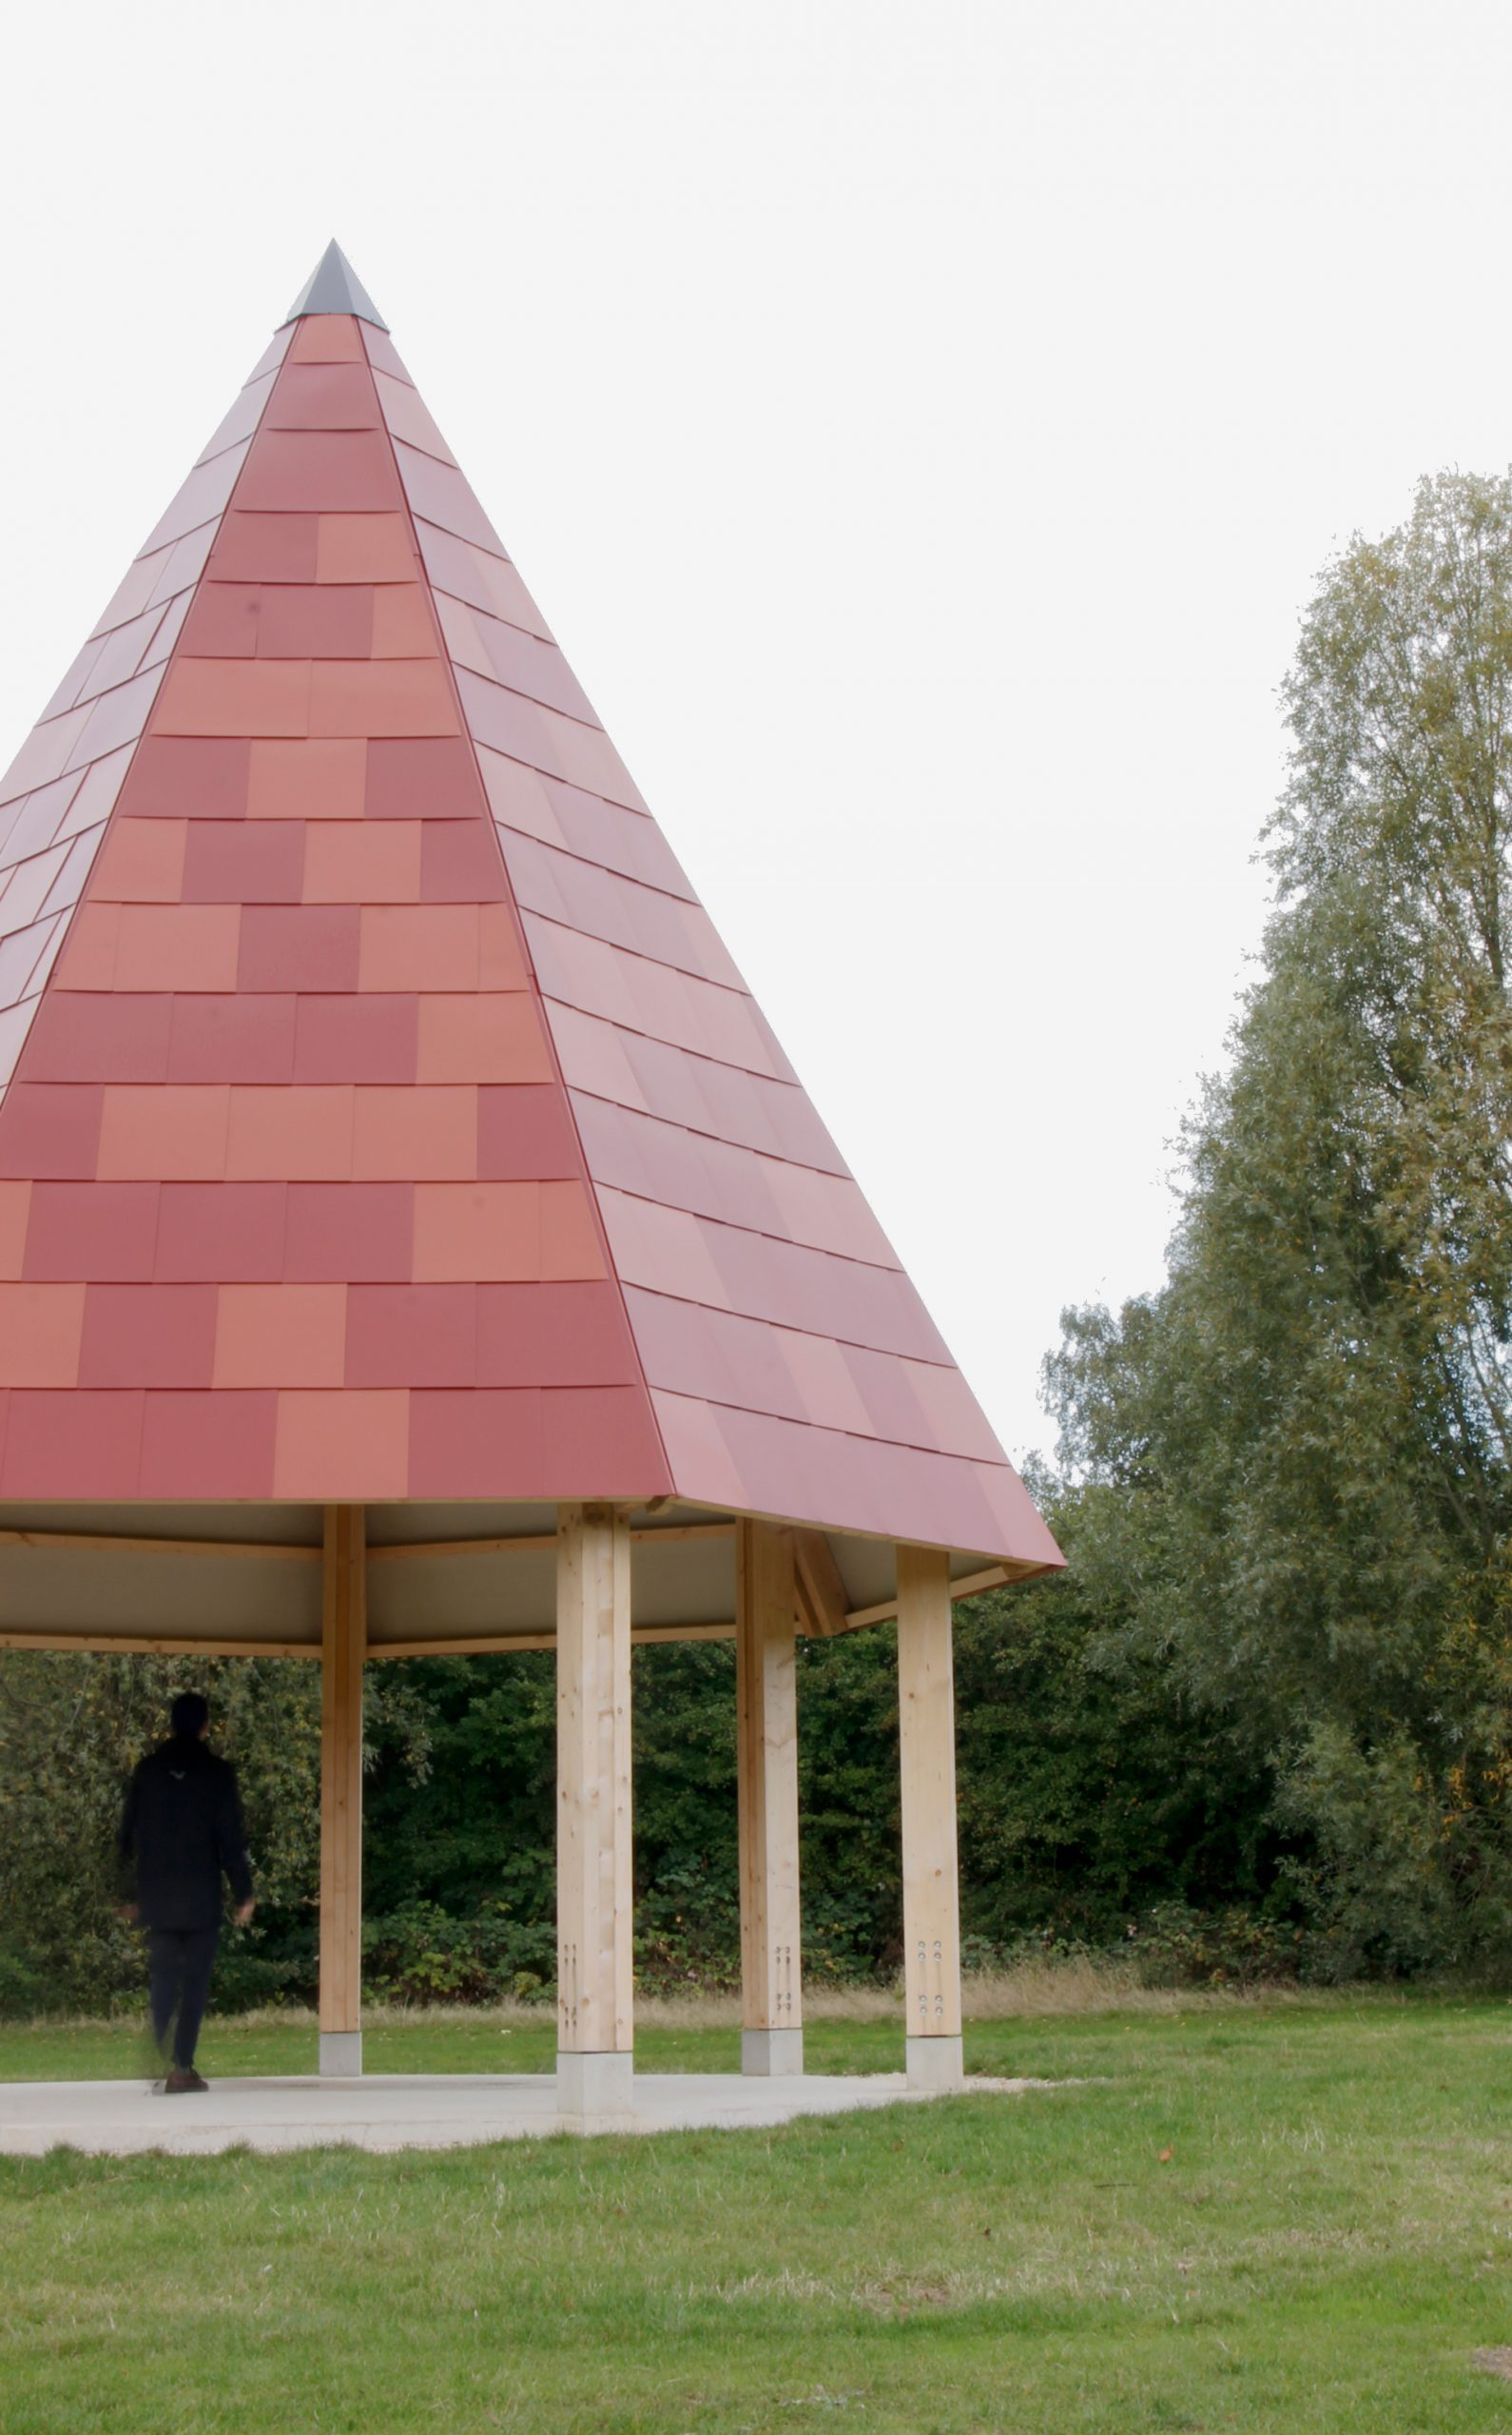 London Borough Waltham Forest, Create London, daa studios required new architecture for Ridgeway Park Pavilion. Find out more.